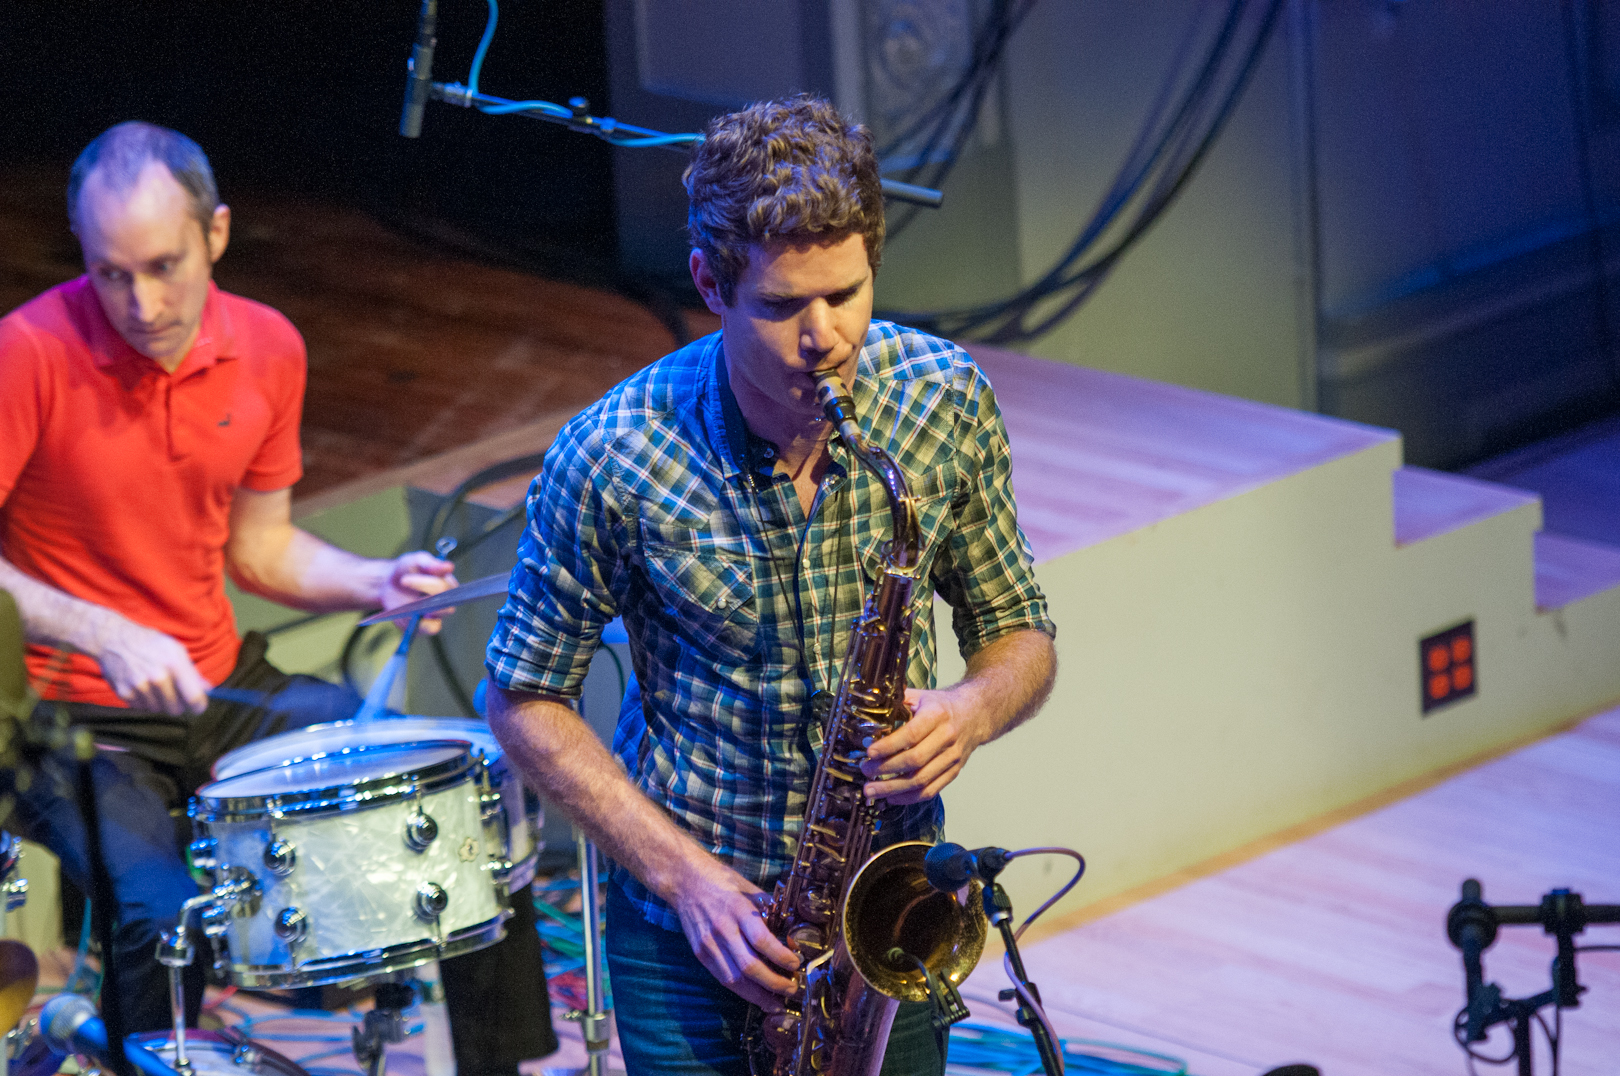 Ben Wendel and Nate Wood with Kneebody at the Vision Festival 2012